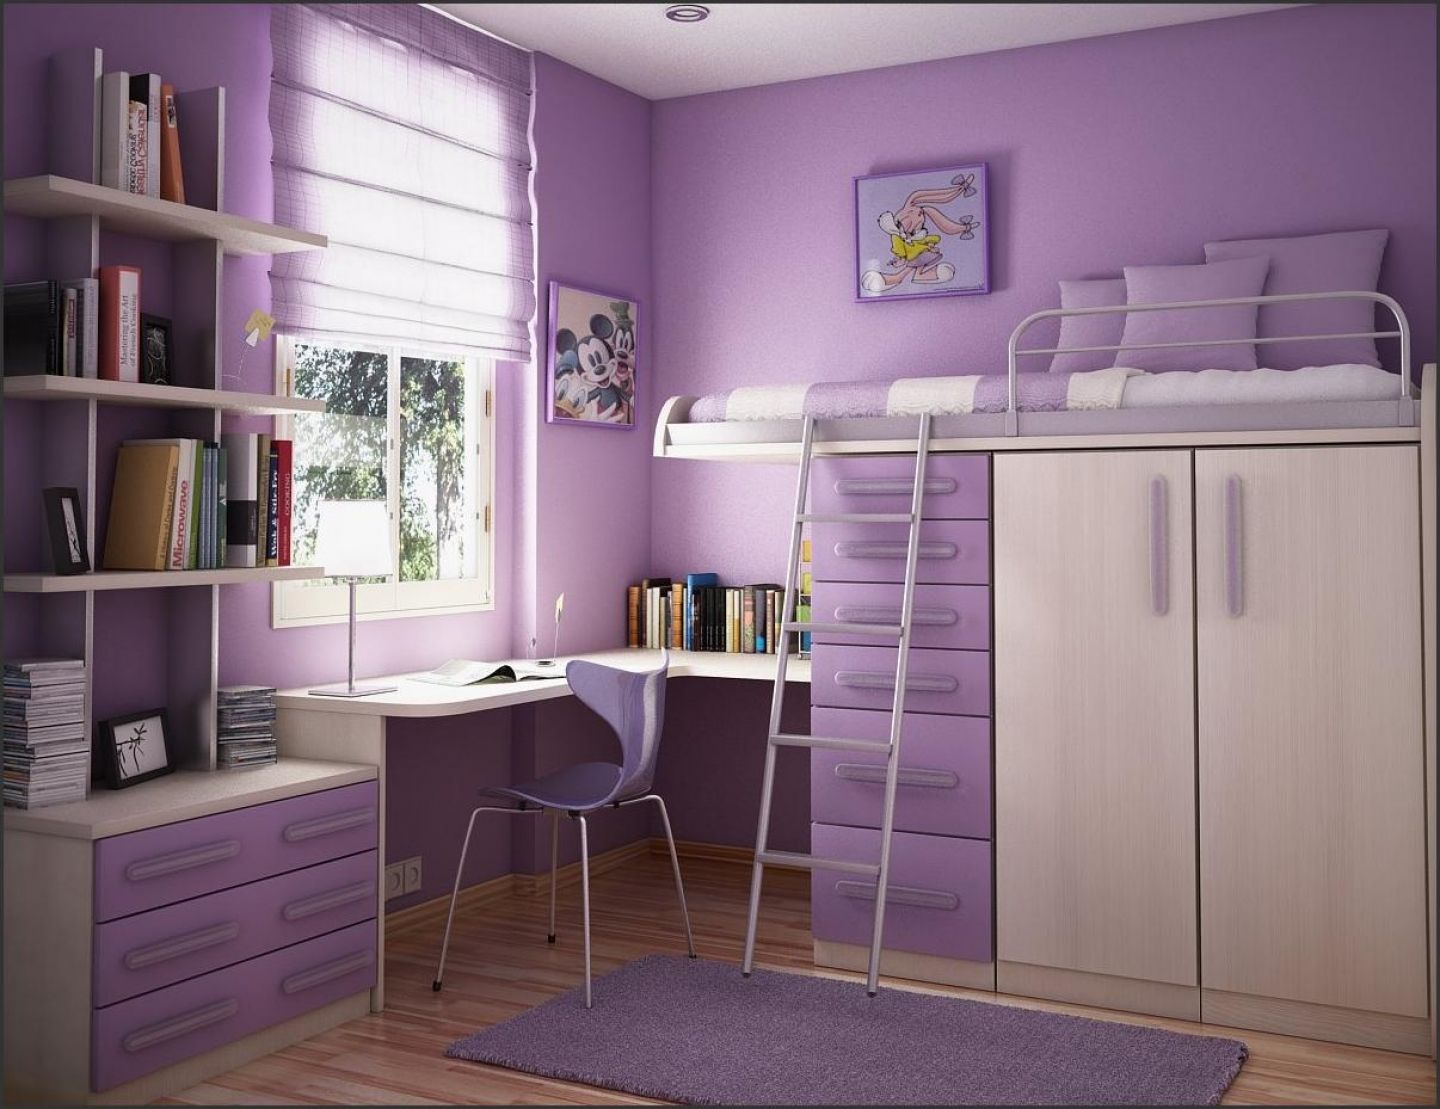 teen girl bedroom decorating ideas 06 13 1403 - Decorating Teenage Girl Bedroom Ideas